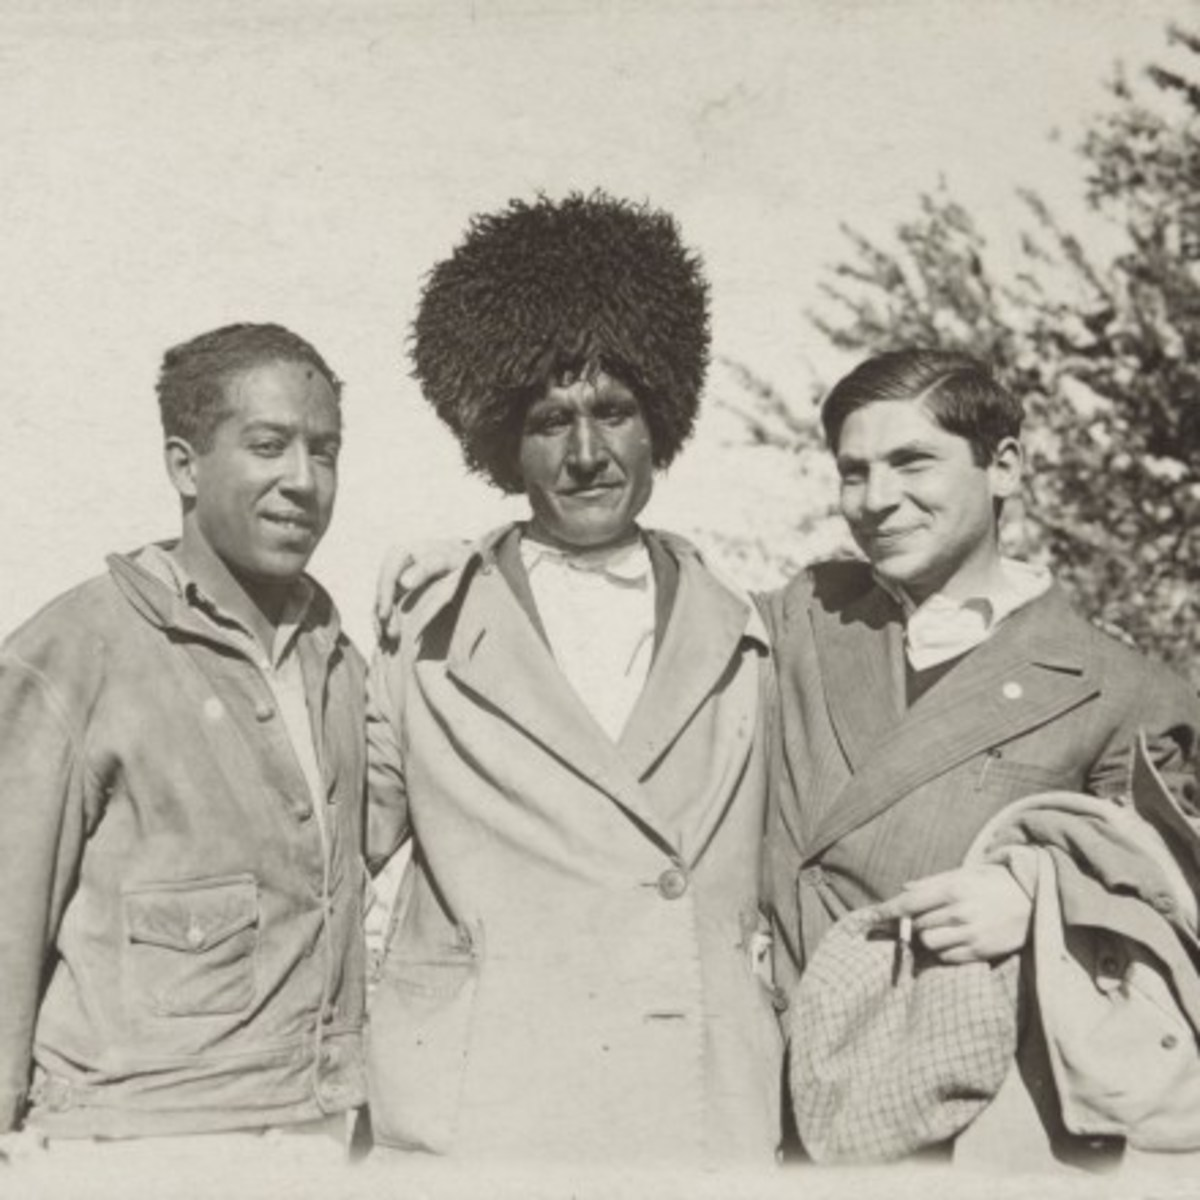 Langston Hughes enjoying life in his new home, Turkmenistan.